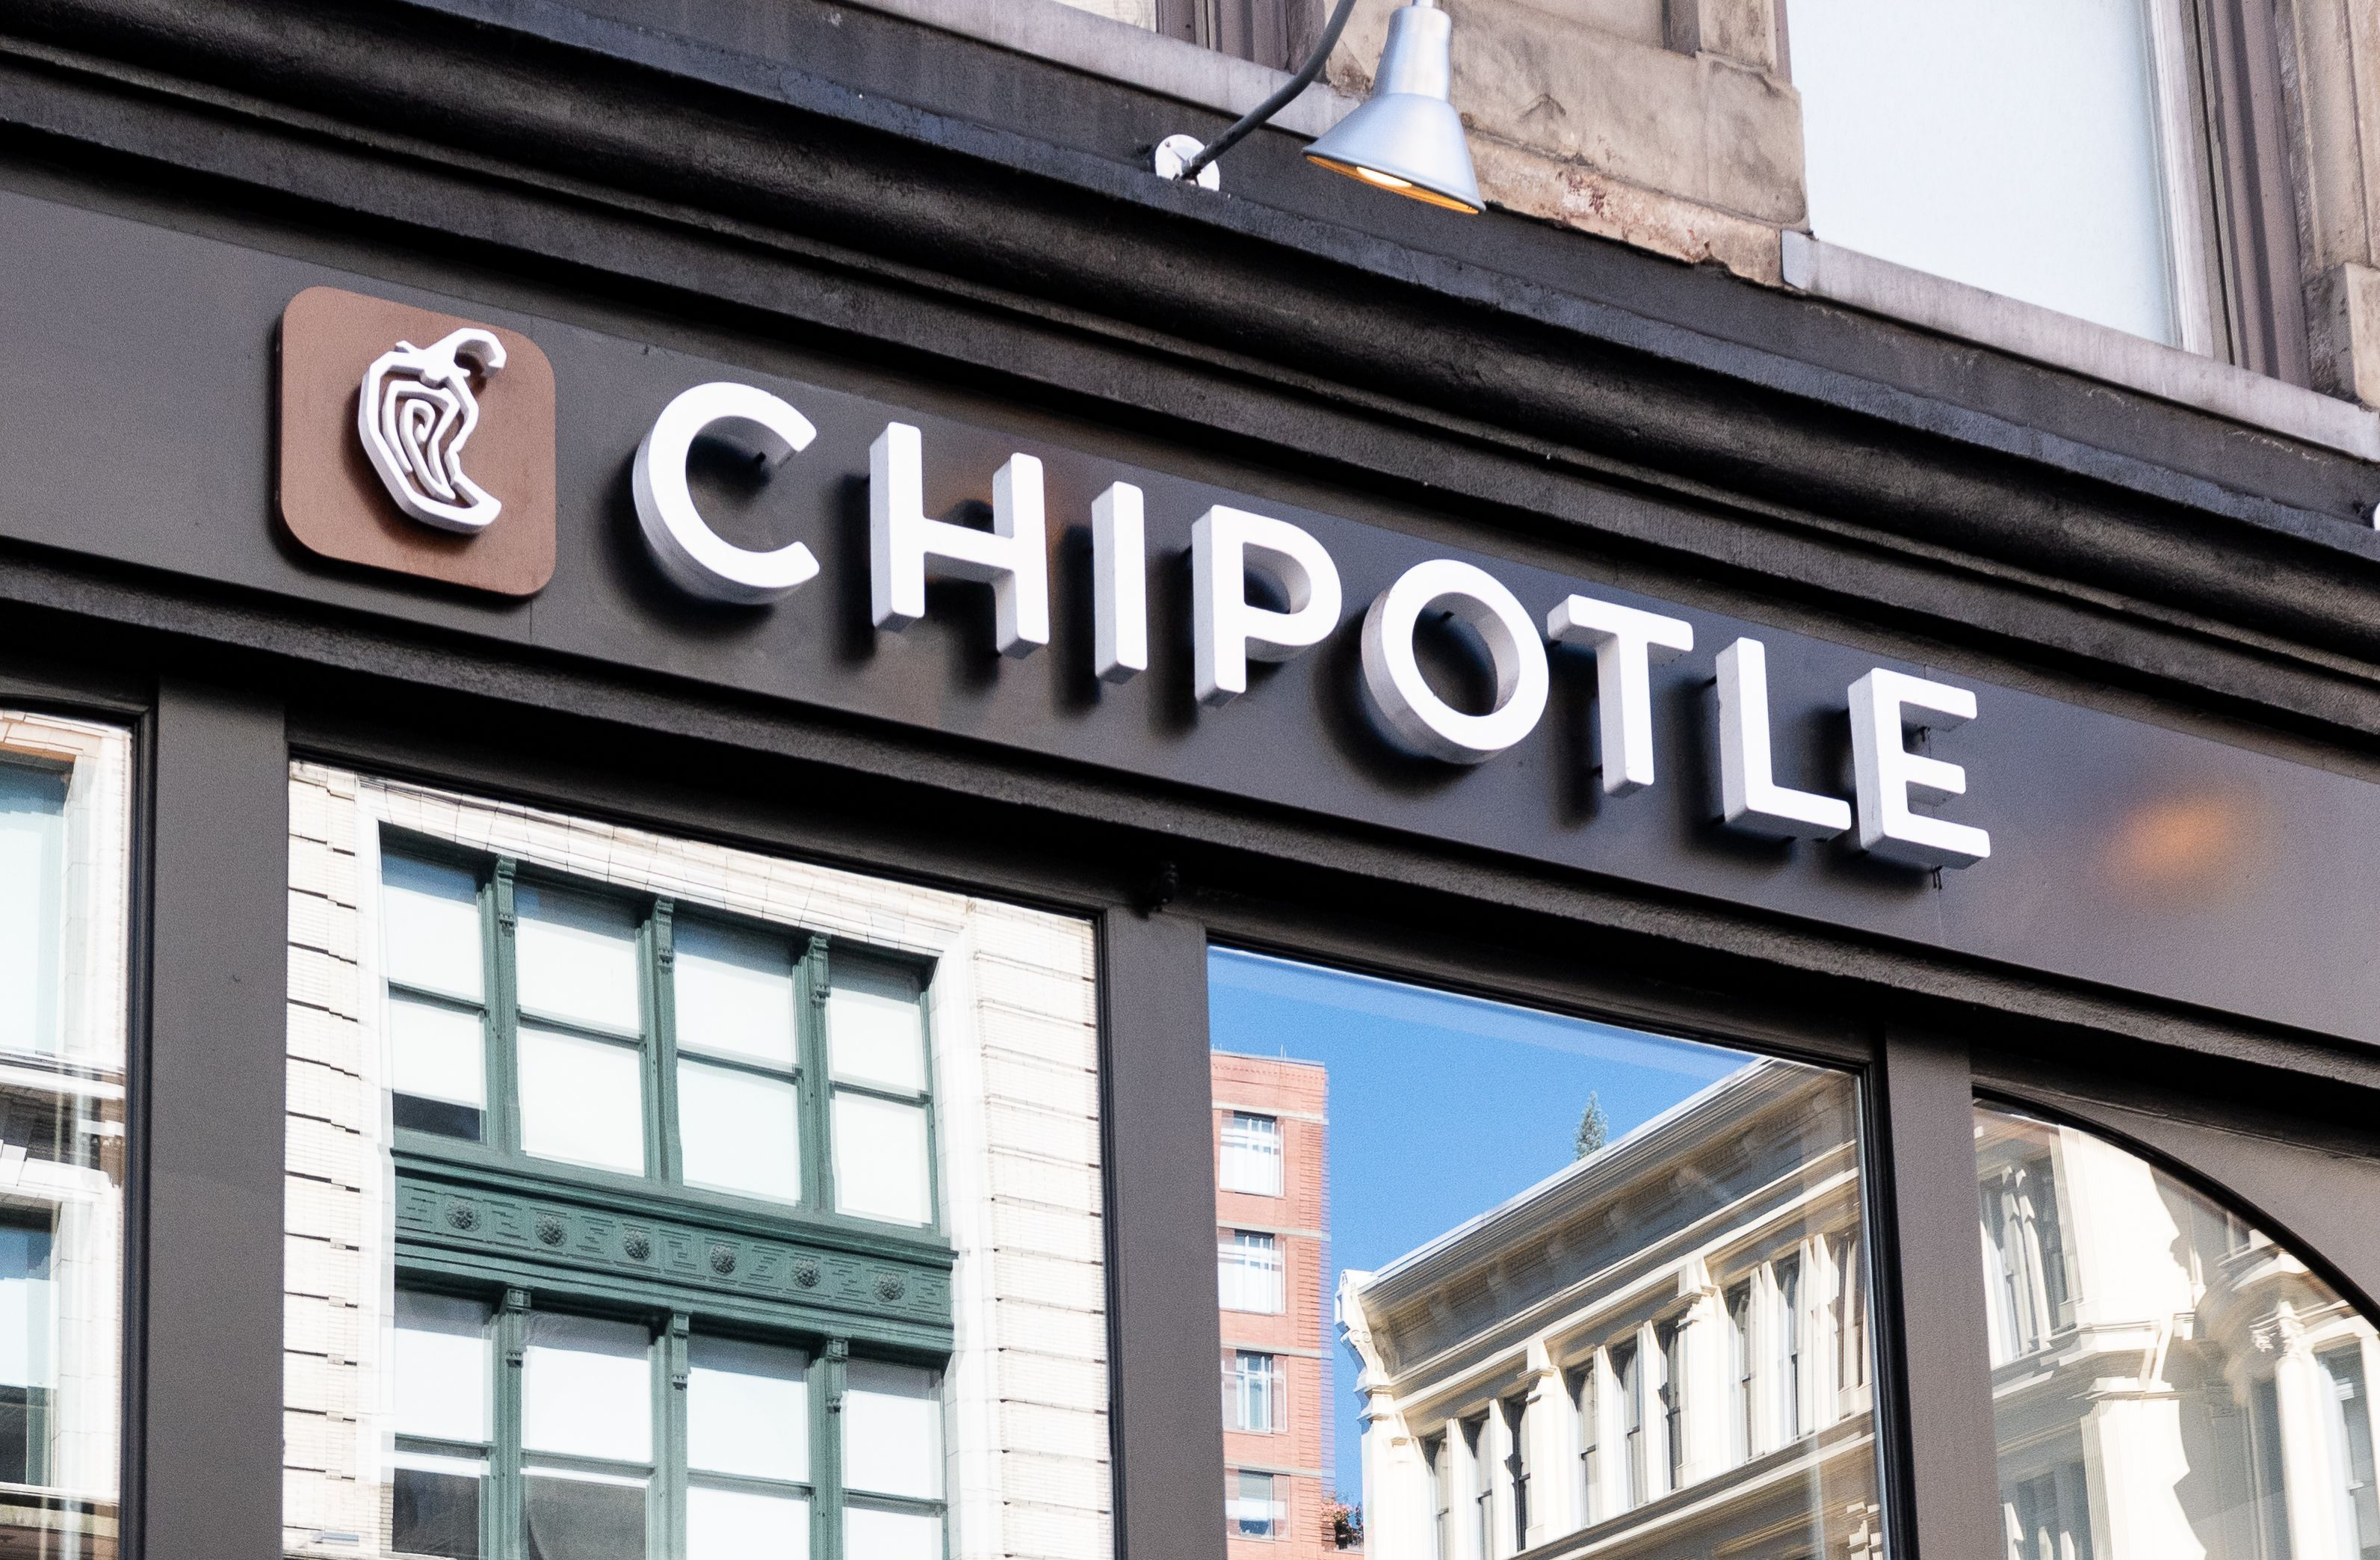 Chipotle illness outbreak: source confirmed by health officials Chipotle illness outbreak: source confirmed by health officials new pictures